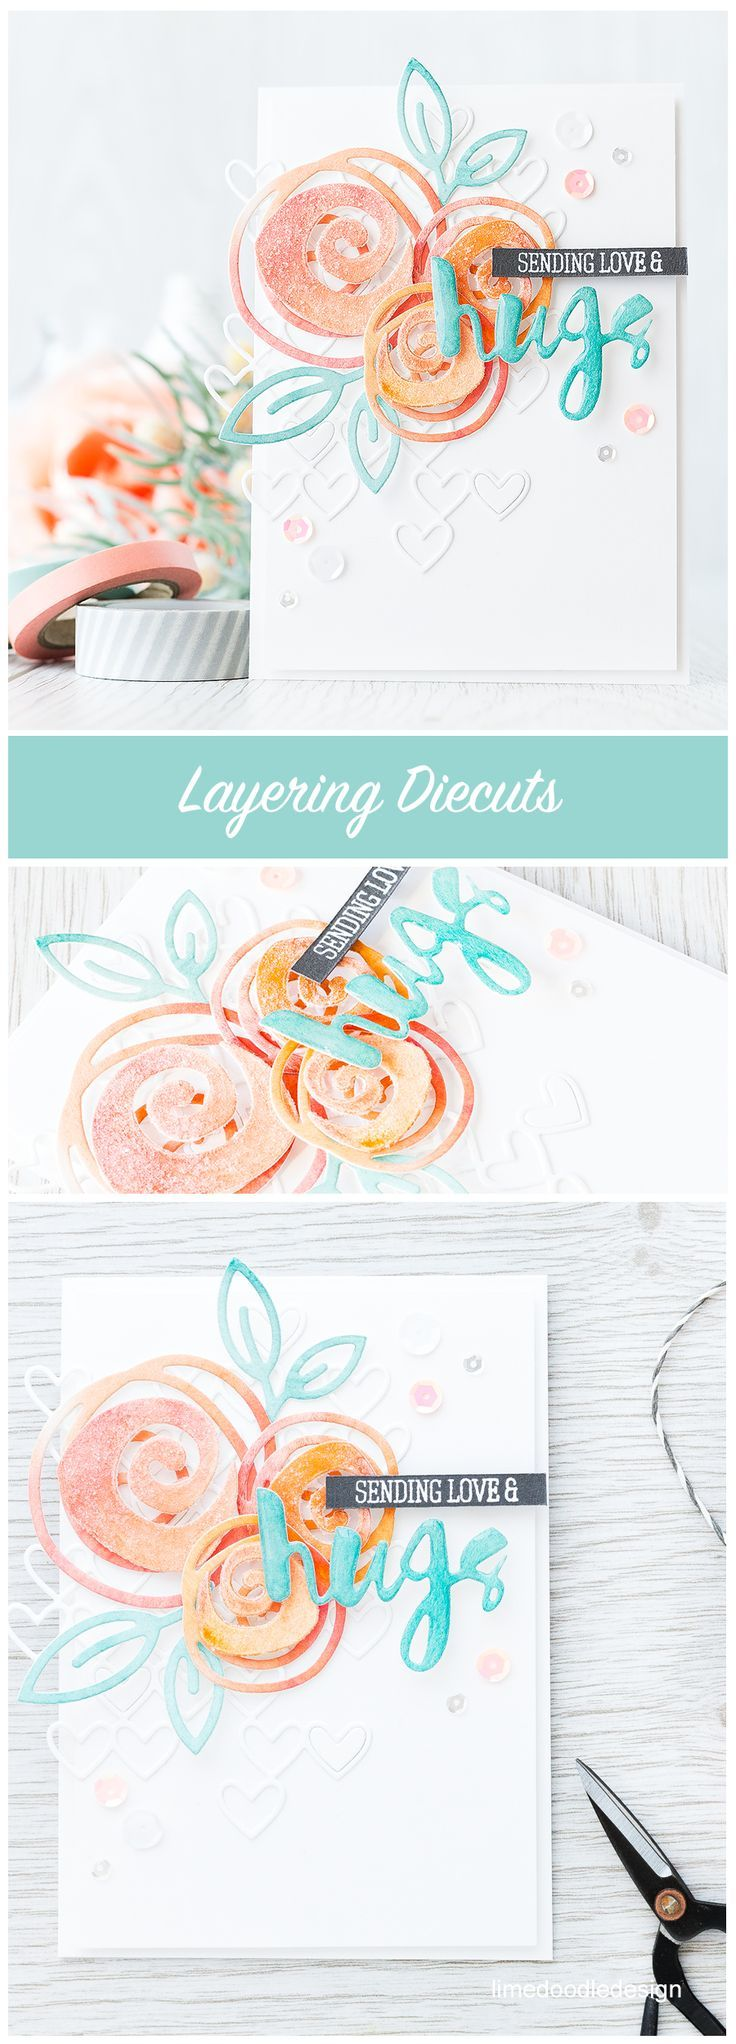 Layering die cuts to give lots of interest and dimension. Find out more by clicking on the image!